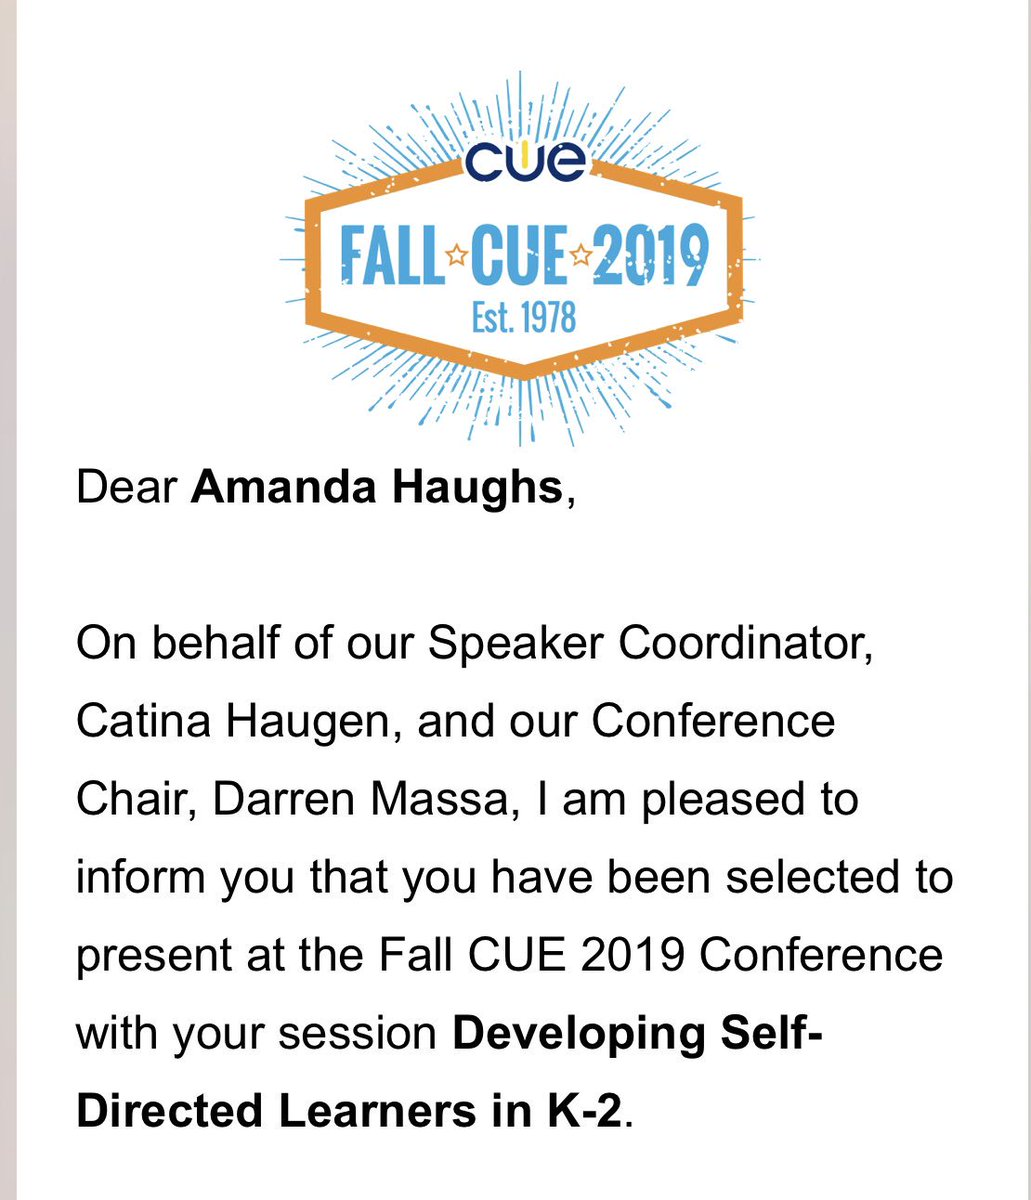 After a long hiatus, excited to present at Fall CUE this October w/@thehughes2! We'll discuss our journey & strategies for developing more self-directed learners in K-2 #K2CanToo #FallCUE19 #WeAreCUE #caedchat